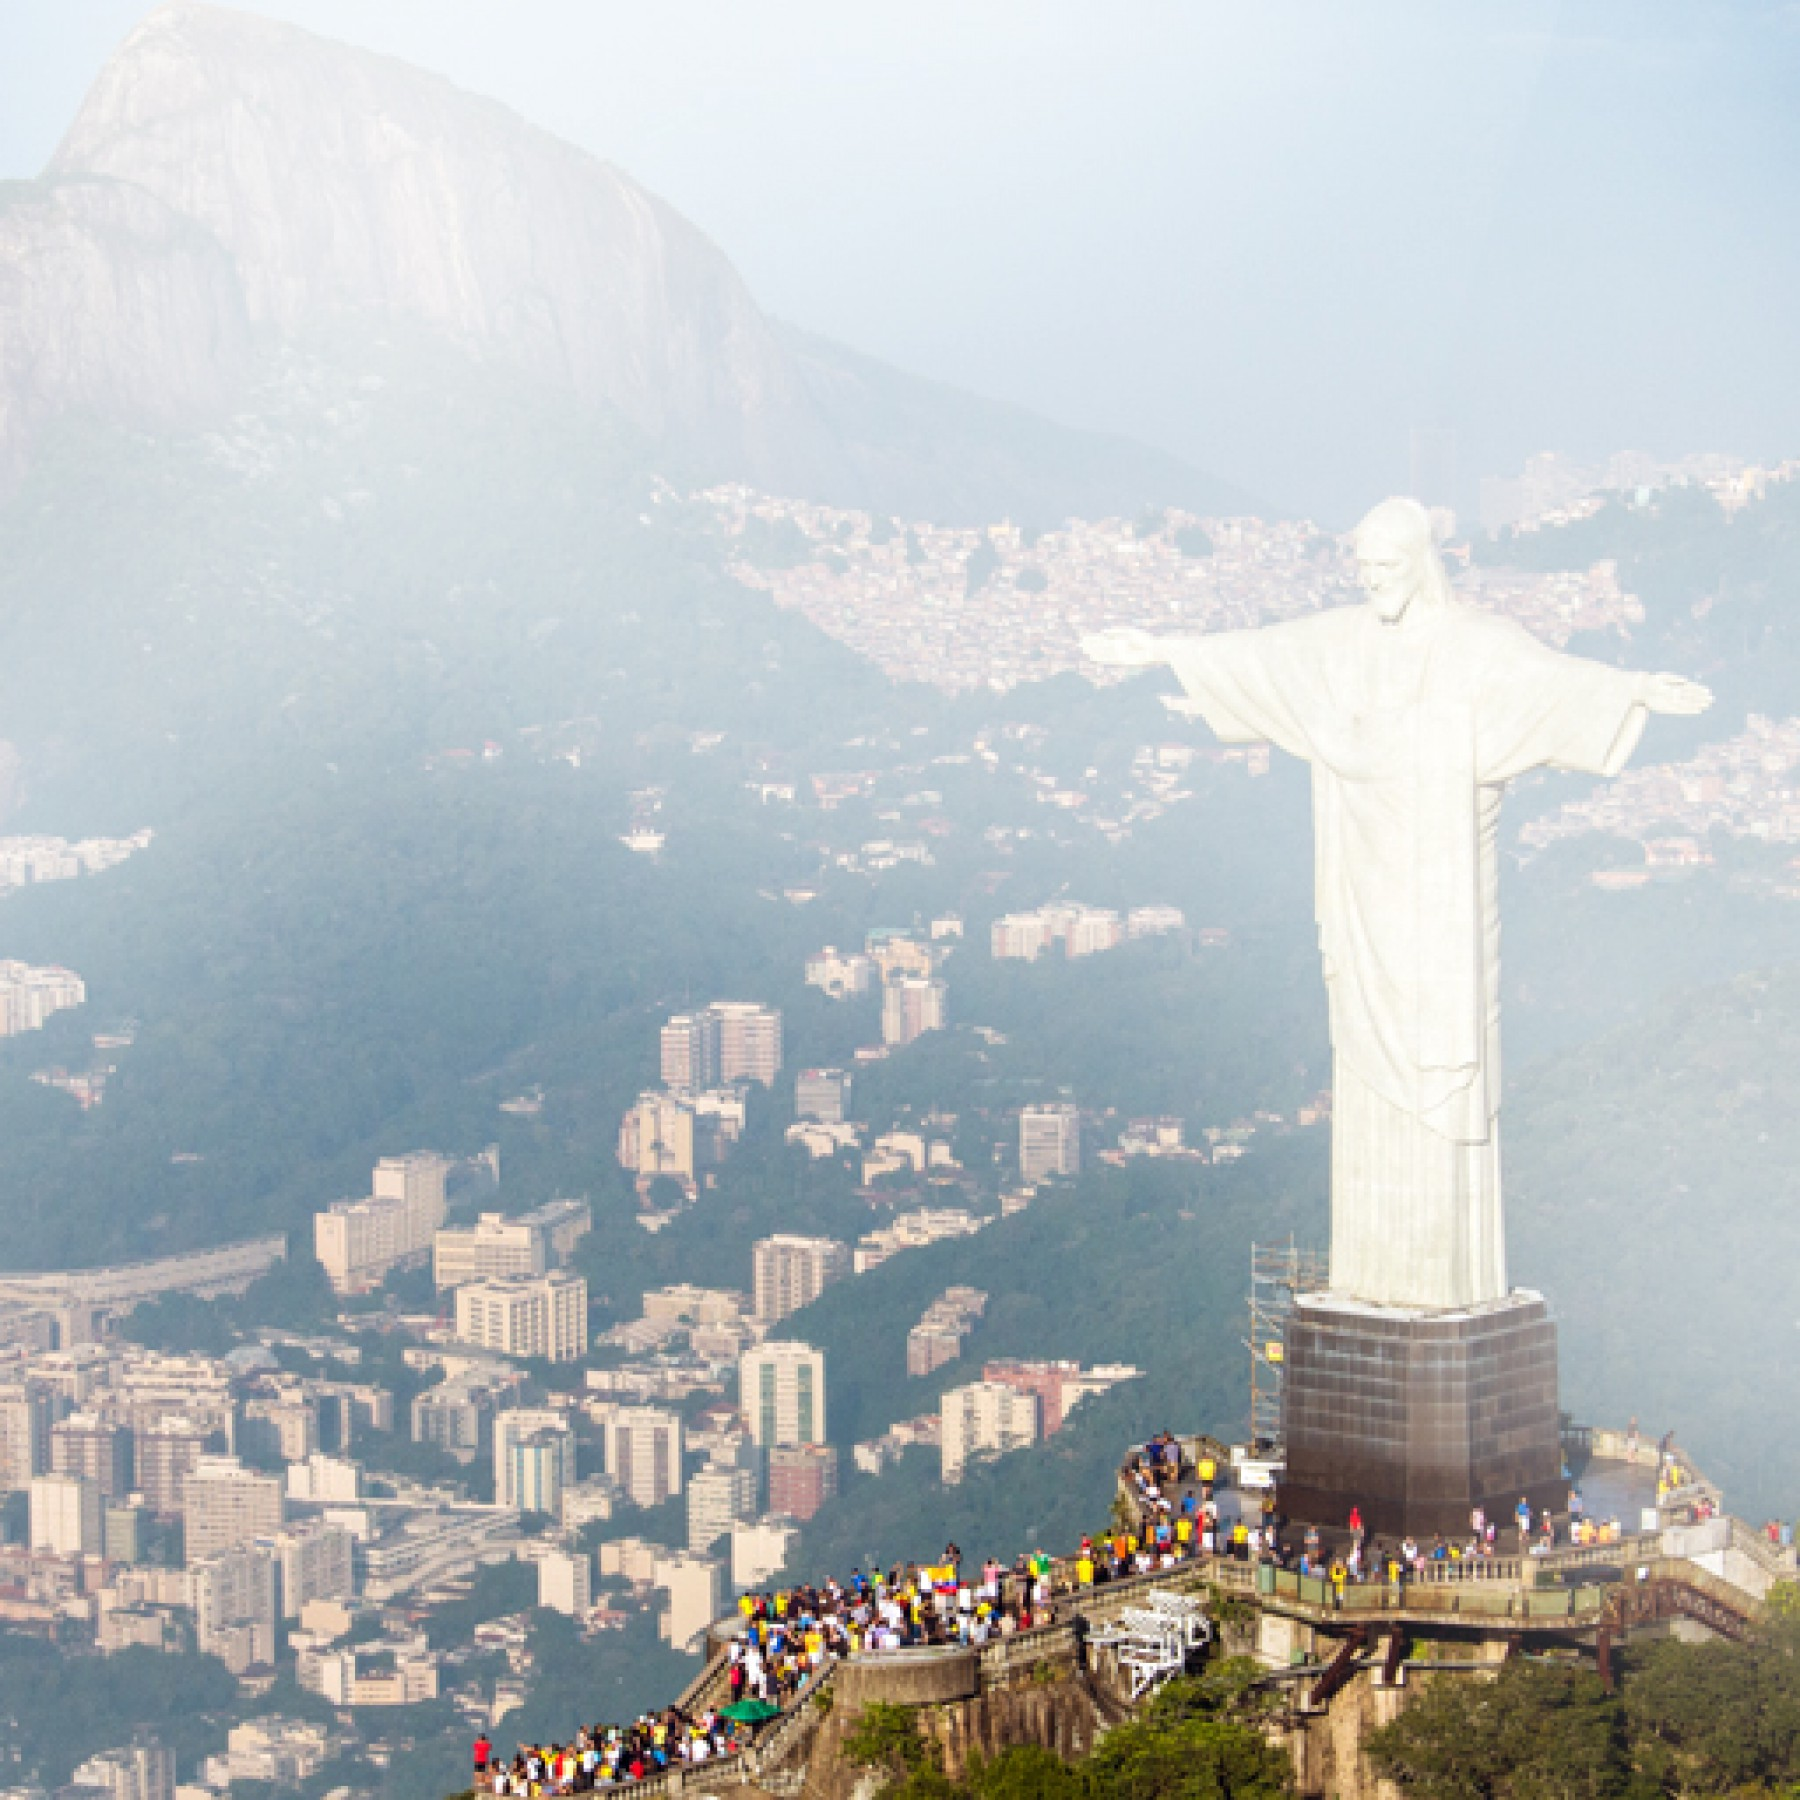 cristo-redentor-travel-adults-main-location